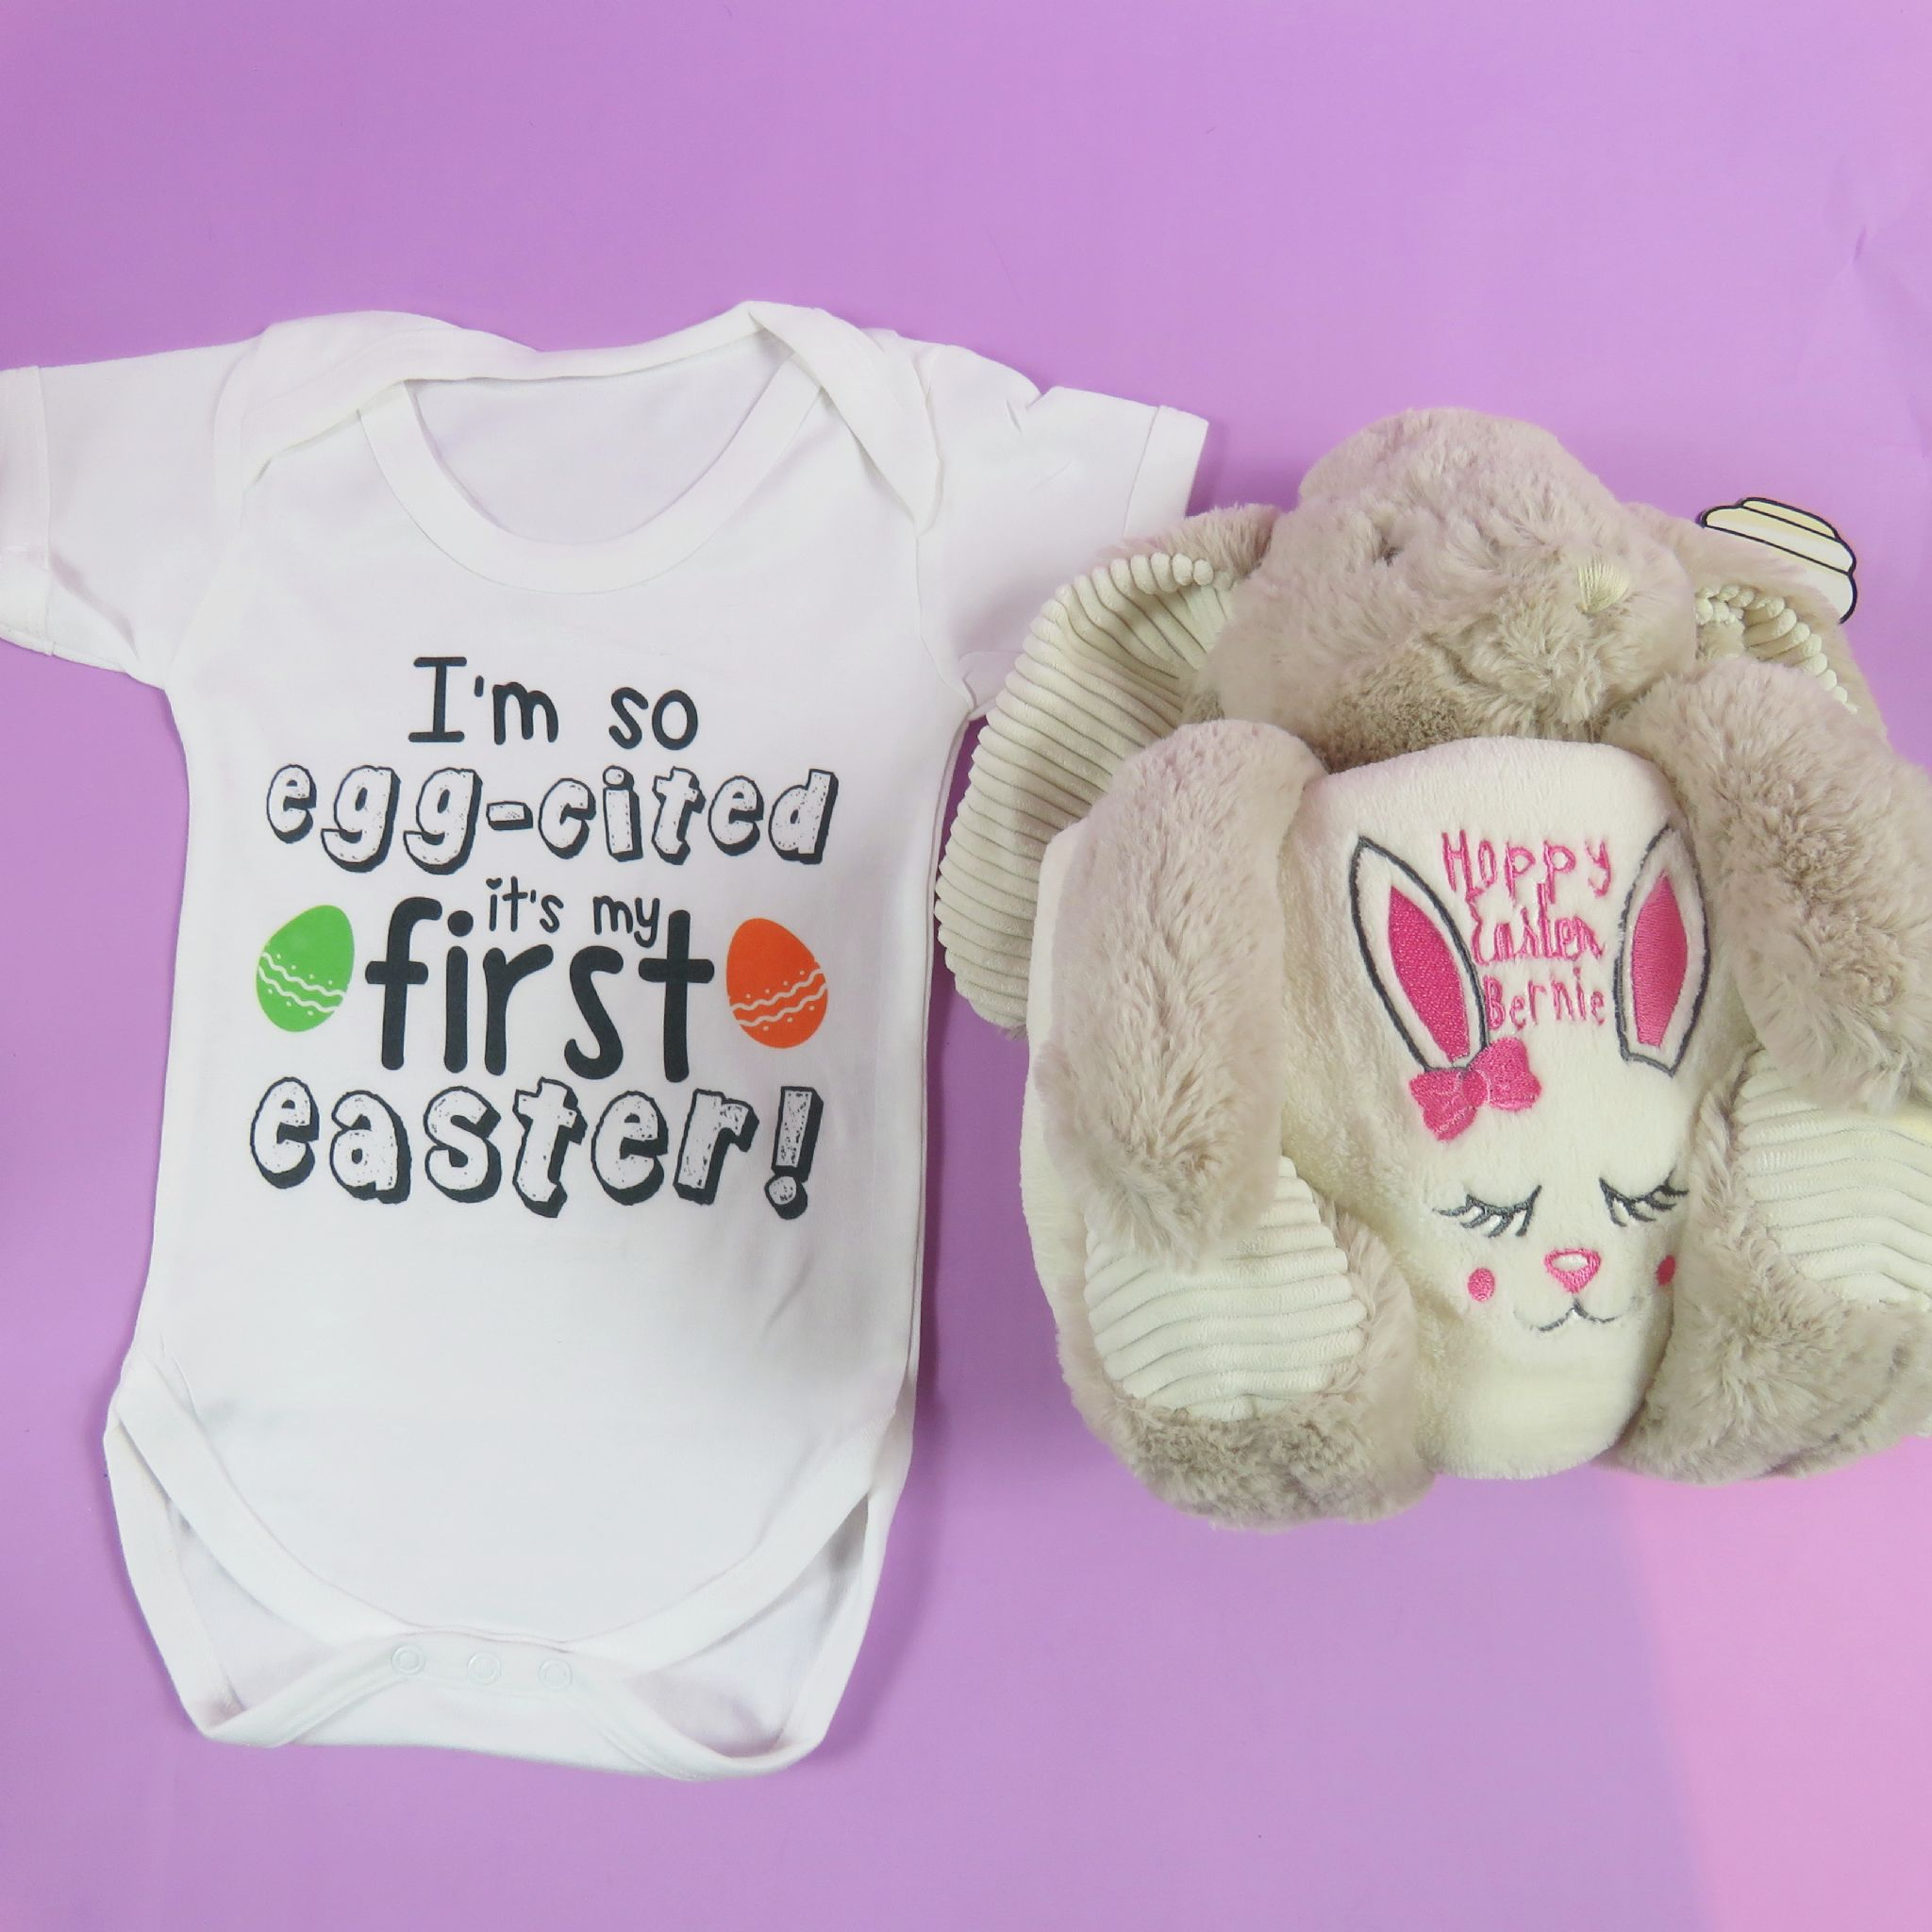 Personalised rabbit soft toy and blanket with baby vest personalised rabbit soft toy and blanket with baby vest embroidered hoppy easter easter gift new negle Gallery